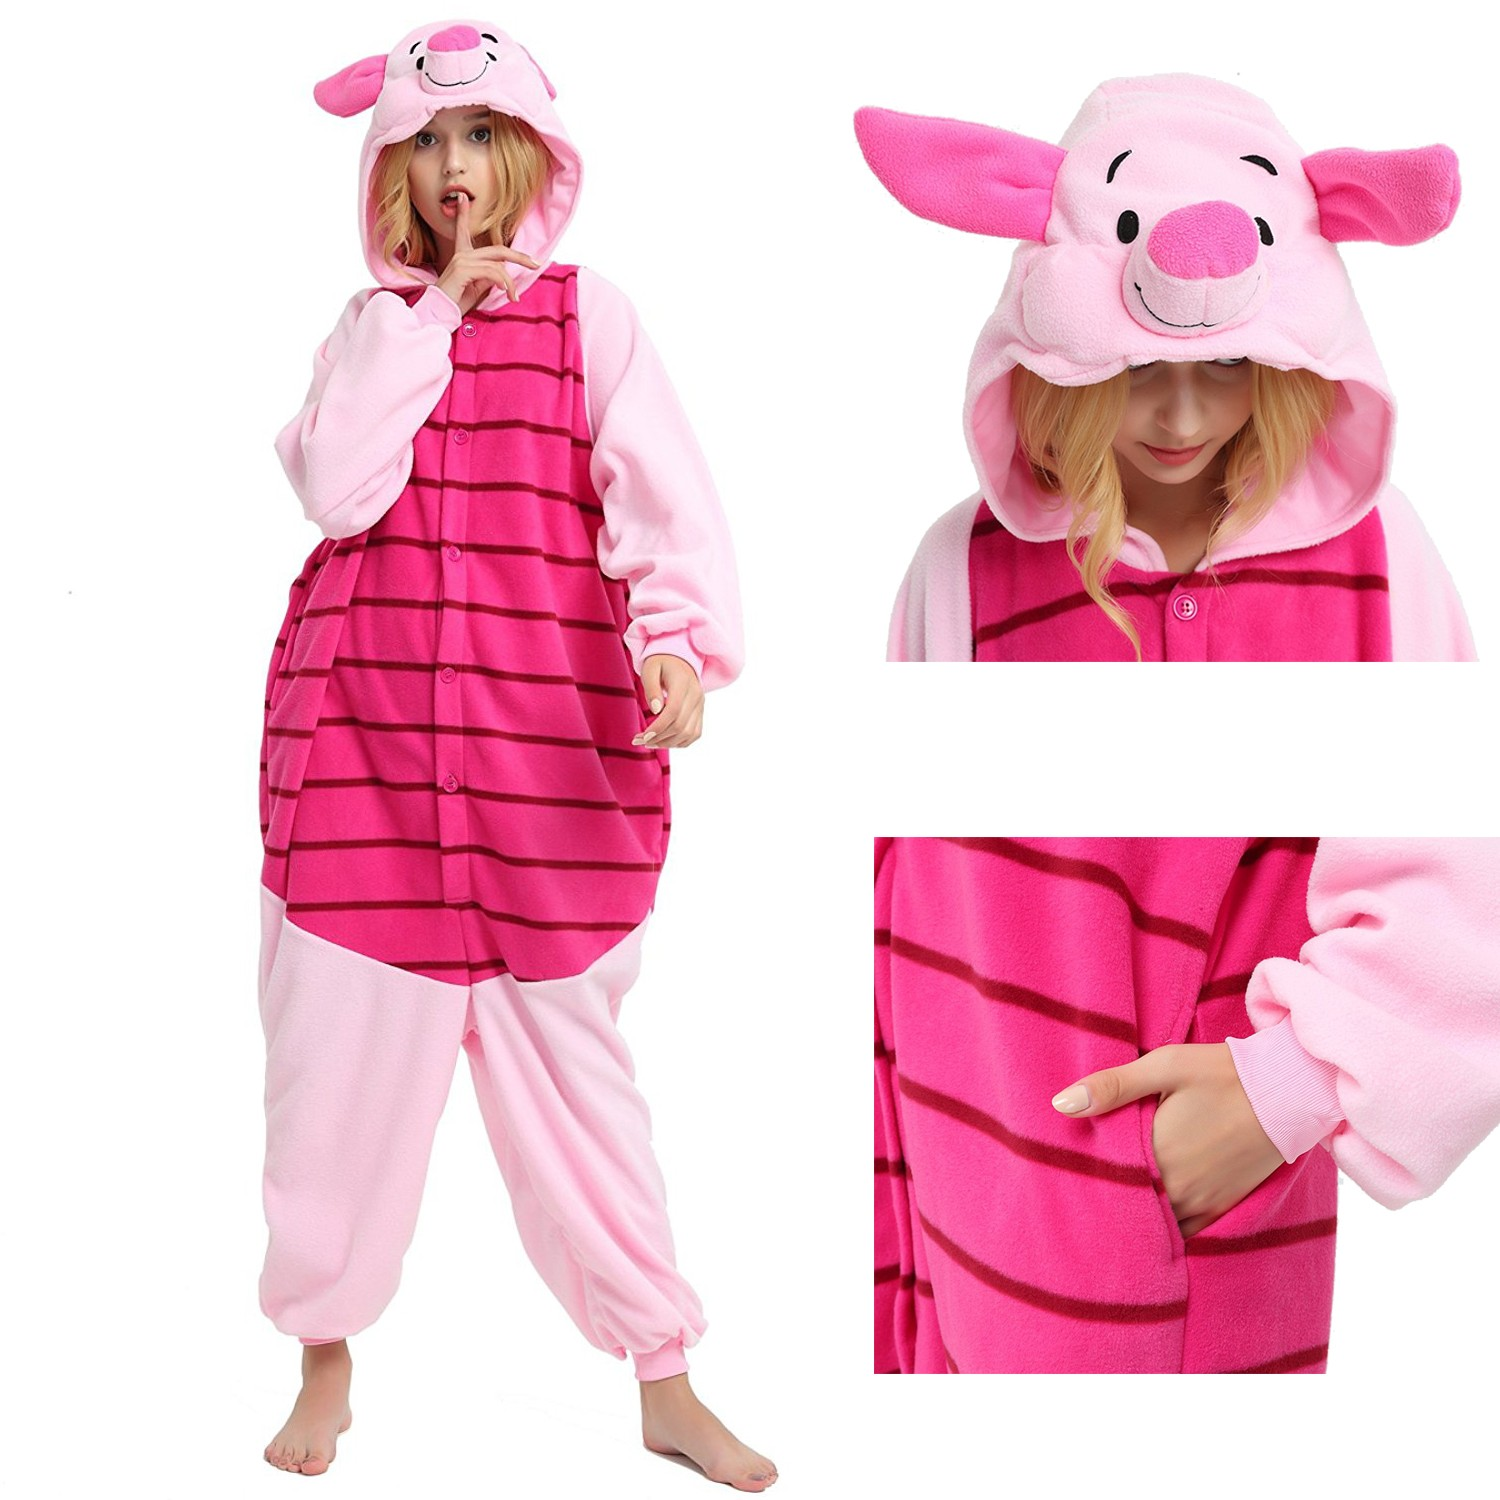 e3a6eaab666d Winnie the Pooh Piglet Onesie for Adult Disney Kigurumi Pajamas Party  Halloween Costumes